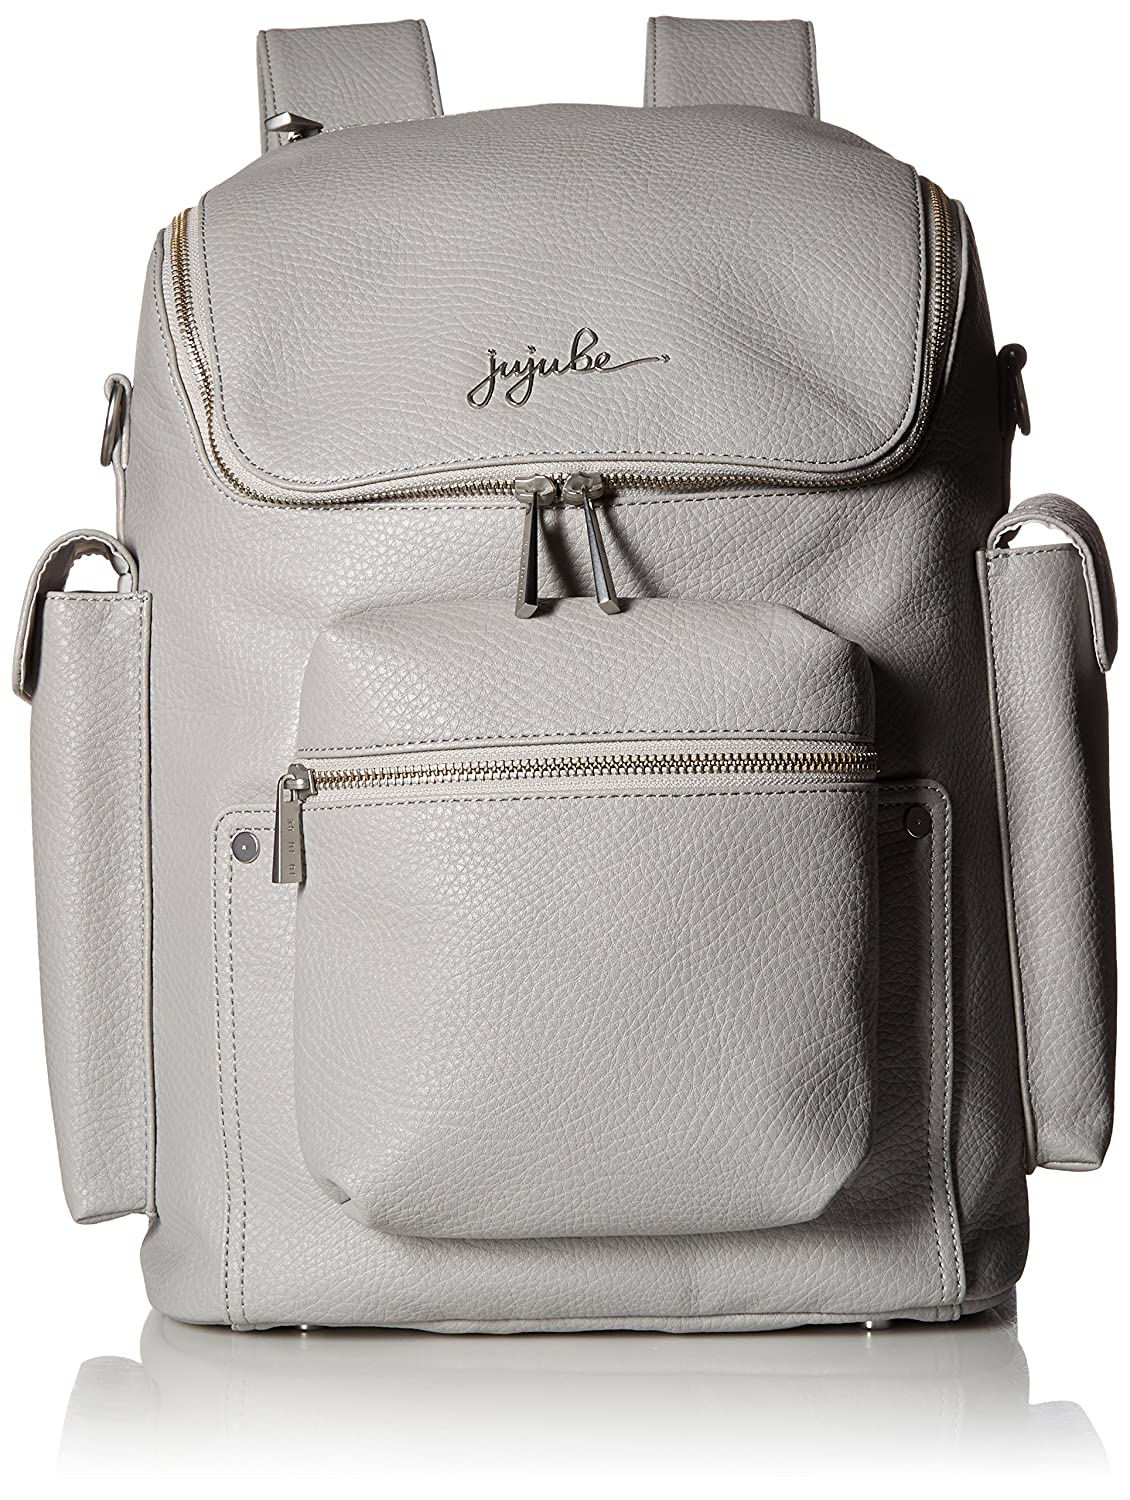 Amazon.com   JuJuBe Forever Backpack Multi-Functional Vegan Leather Diaper  Bag, Ever Collection - Stone   Baby 6e4a54480c